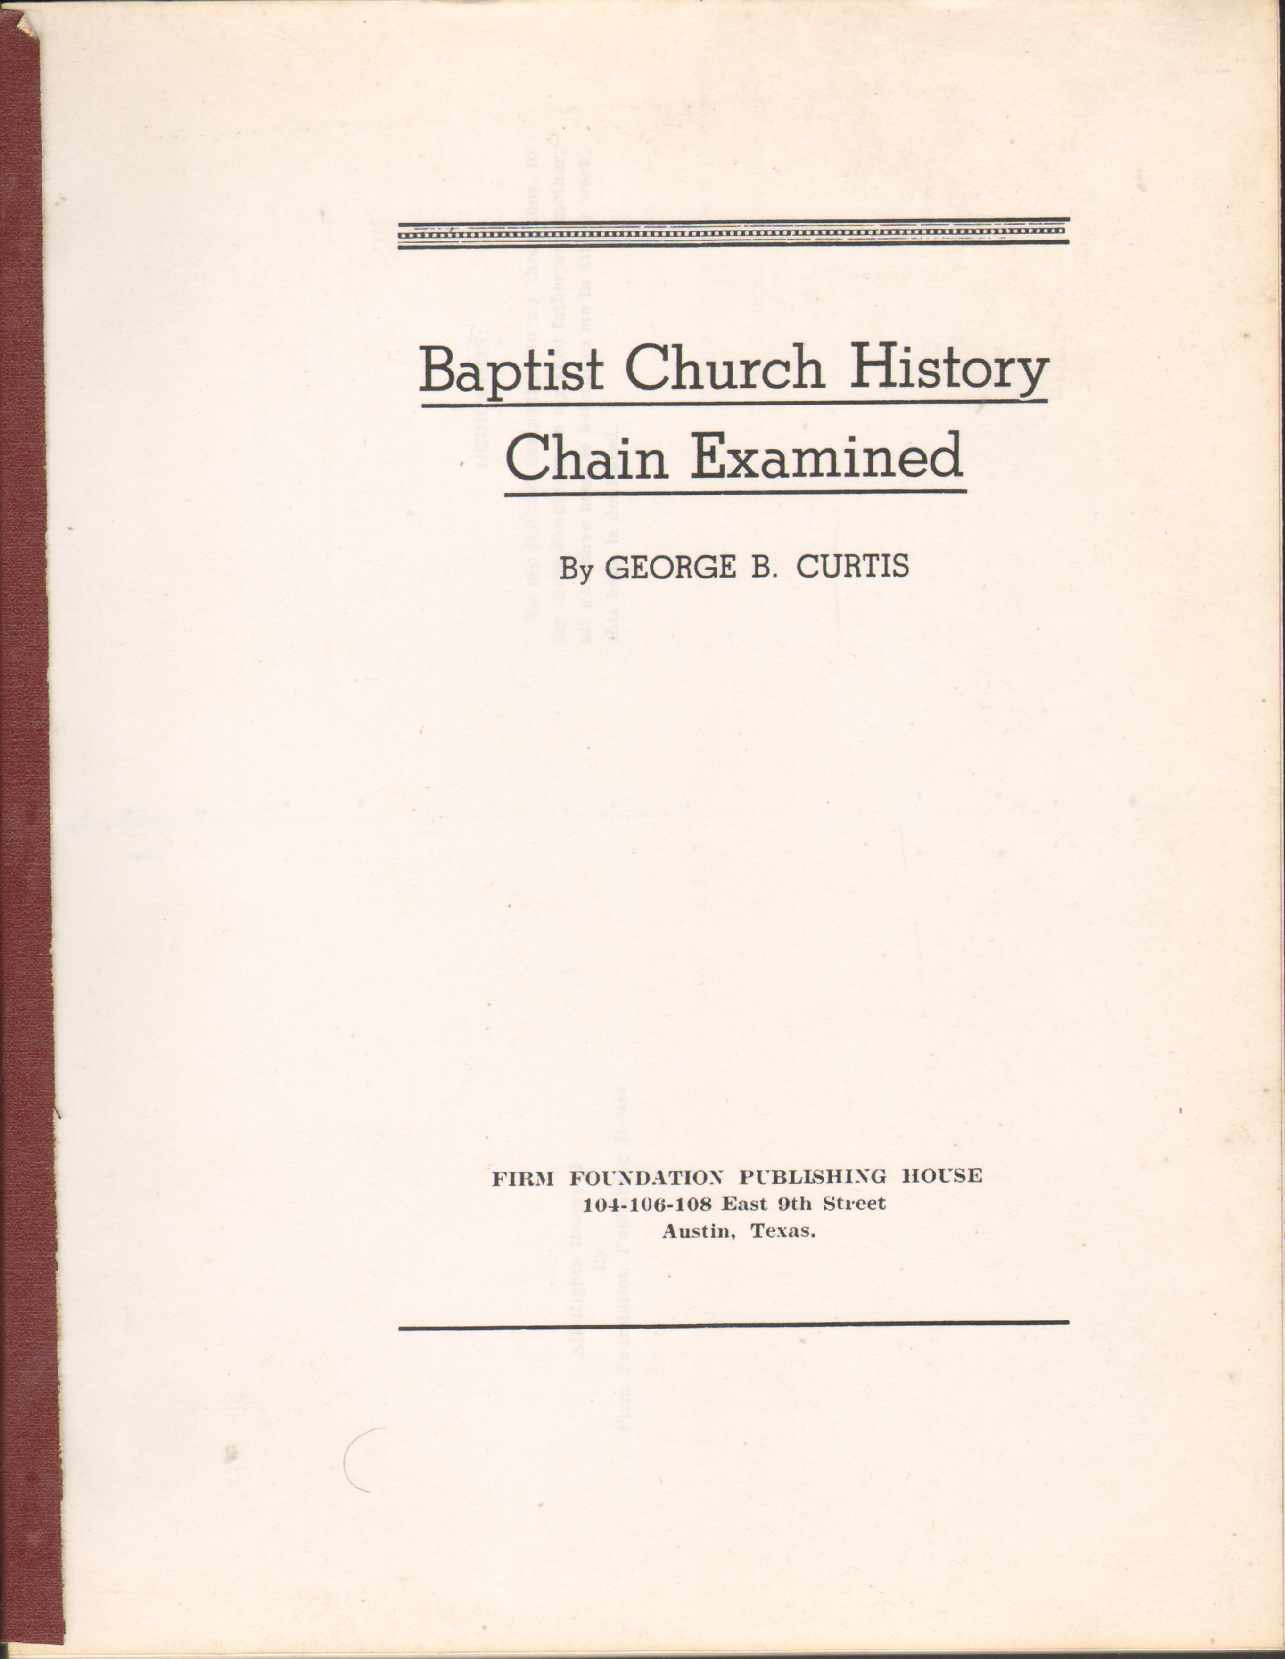 Image for BAPTIST CHURCH HISTORY CHAIN EXAMINED